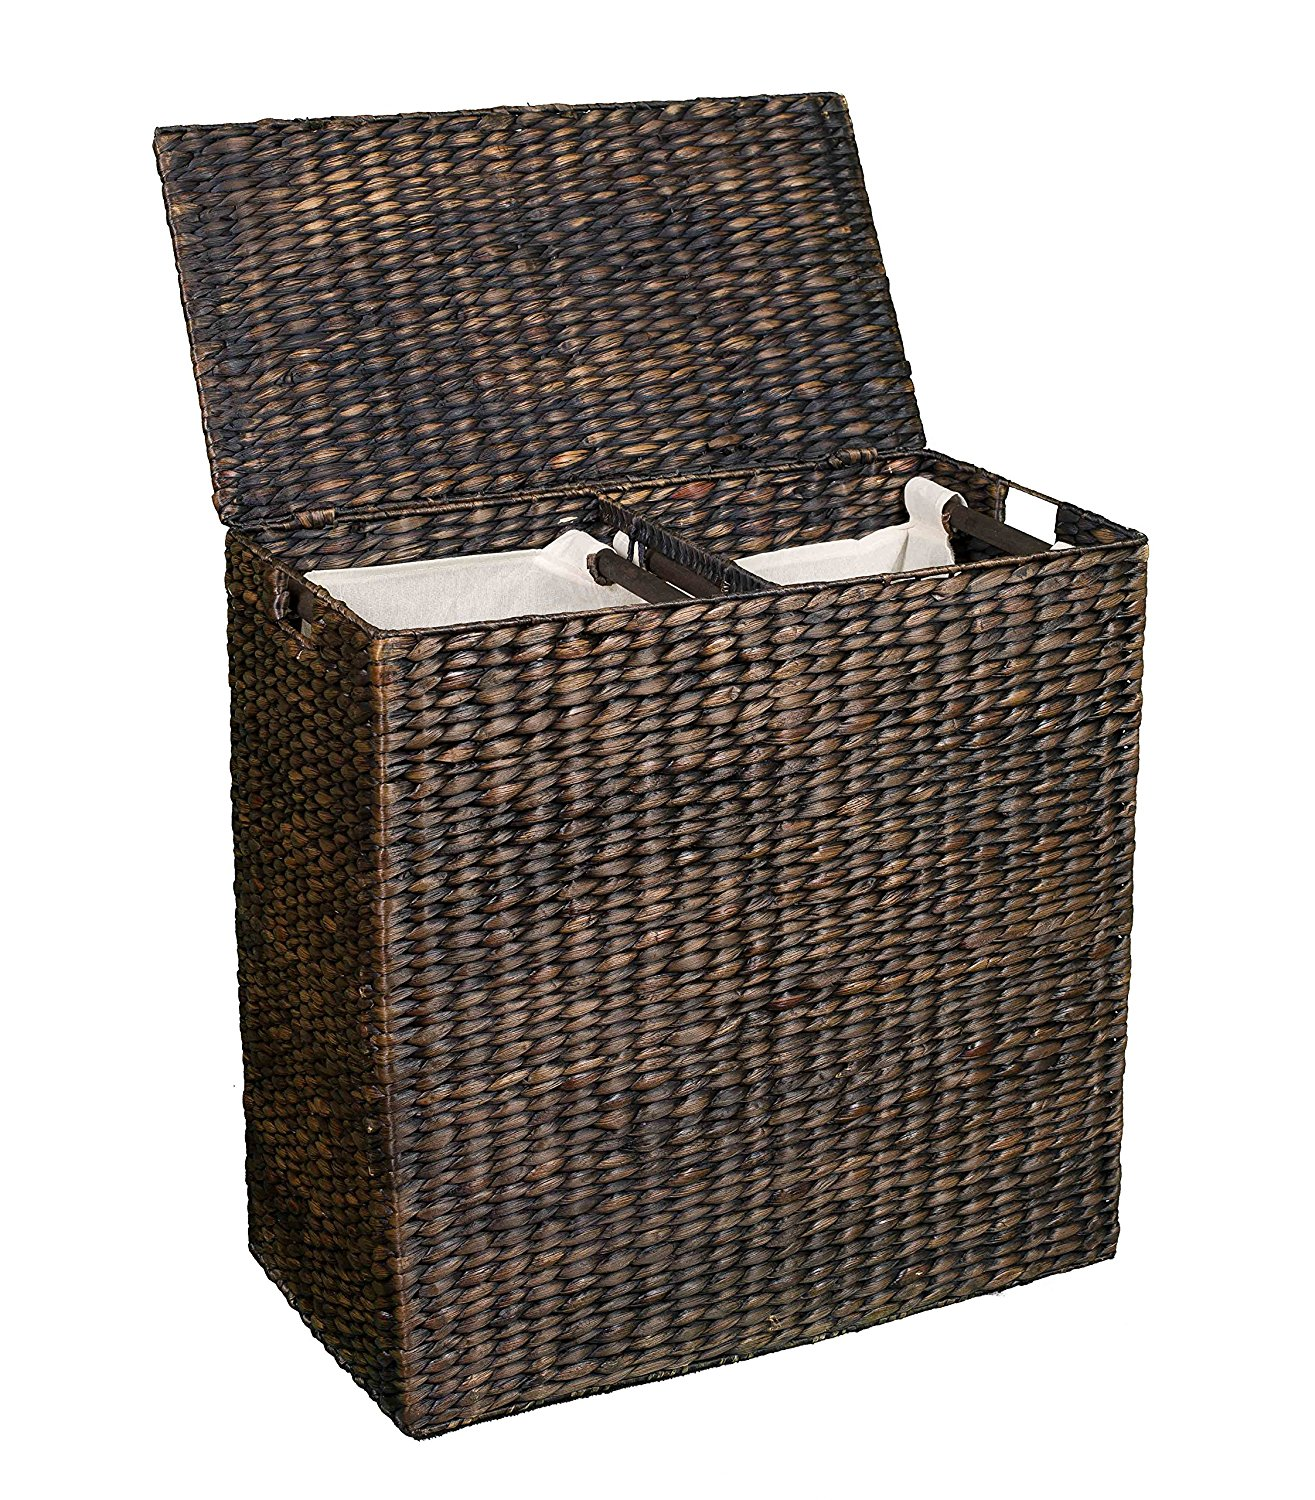 Cool Laundry Hamper Eco Friendly Interiors For Your Green Home Cool Ideas